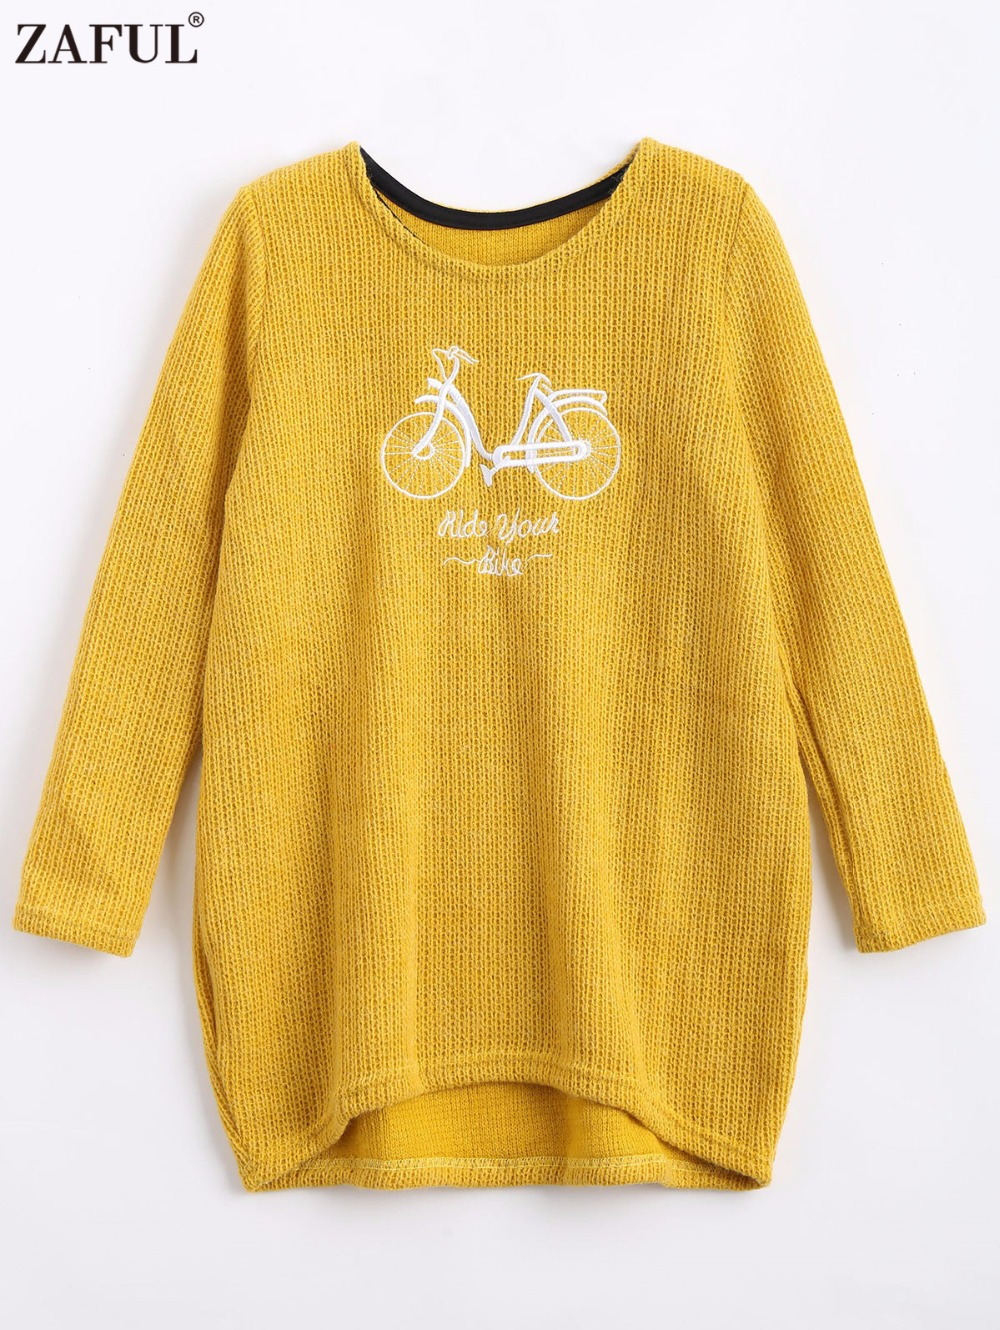 Online Shop ZAFUL Embroidery Sweater Women Knitted Long Jumpers ...